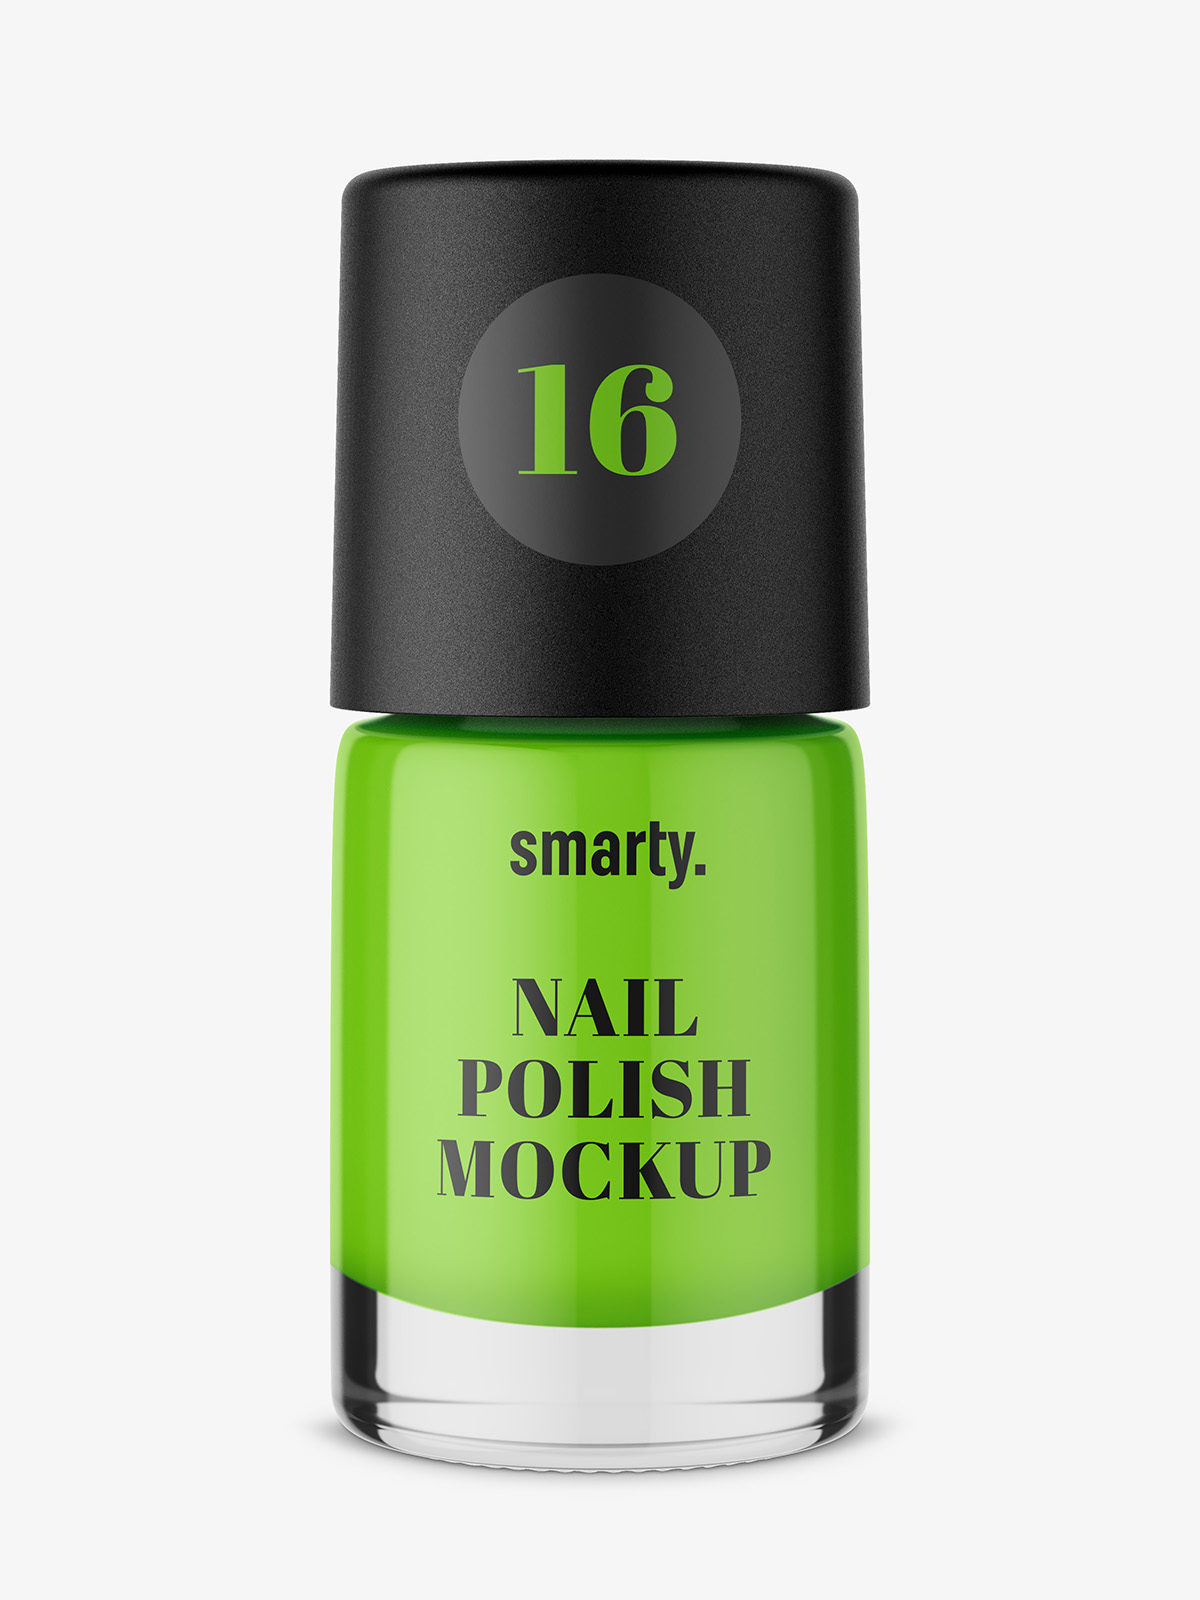 Nail polish mockup with solid color